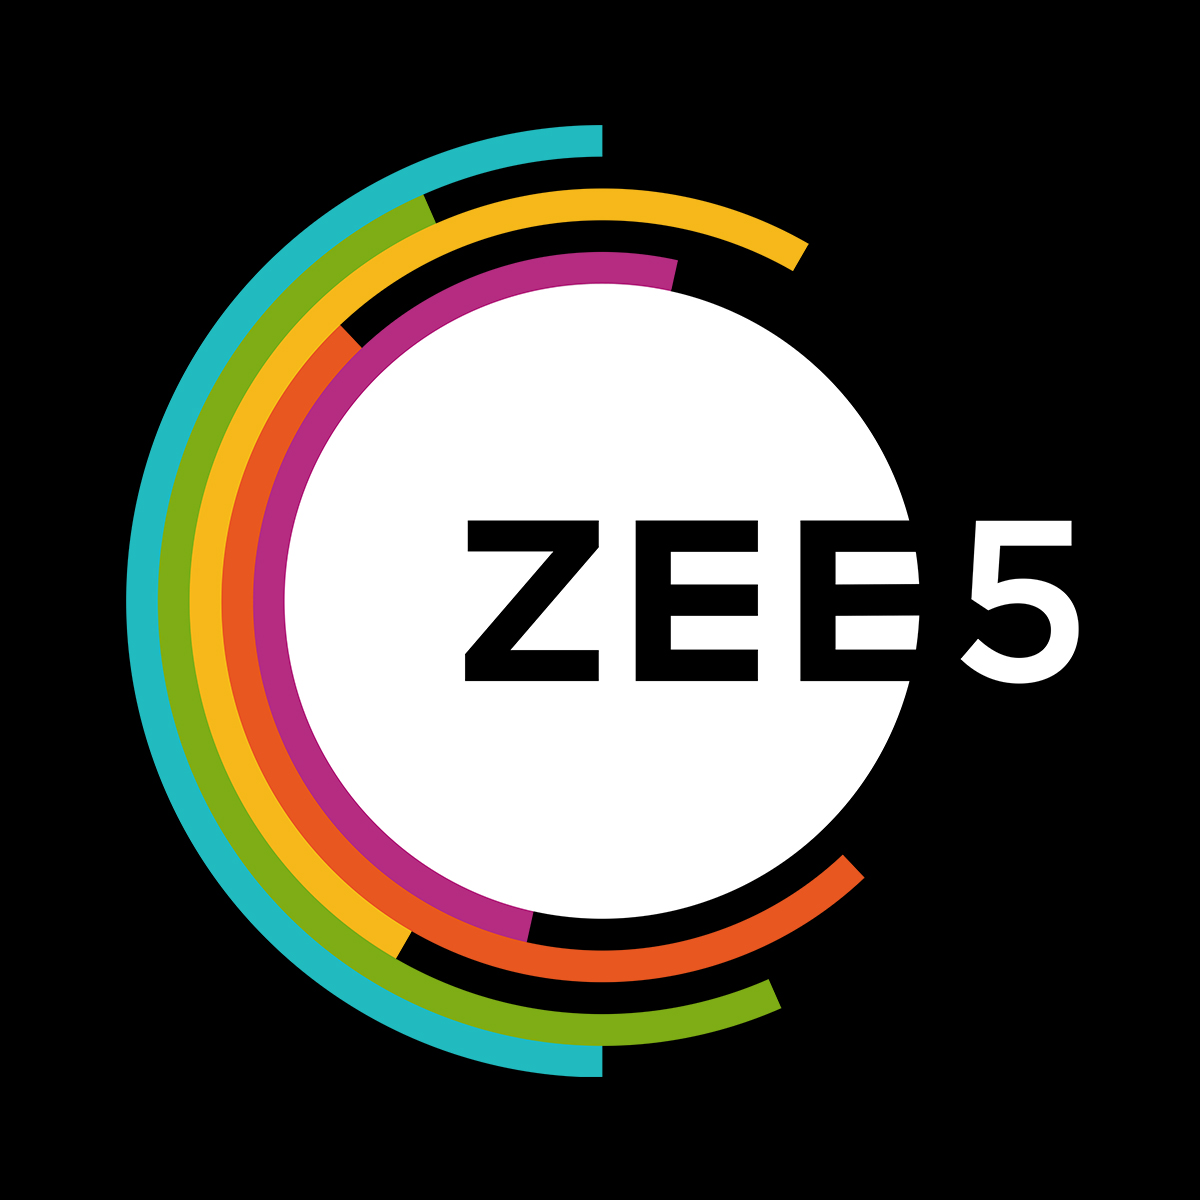 'Chadarangam' ZEE5 Web Series Wiki, Cast, Release Date, Plot, Story, Pics, Images | TvSerialinfo |'Sexpionage' Zee5 Web Series Cast, Release Date, Wiki, Story, Plot, Real Name, Promo, Trailer, Reviews| TvSerialinfo